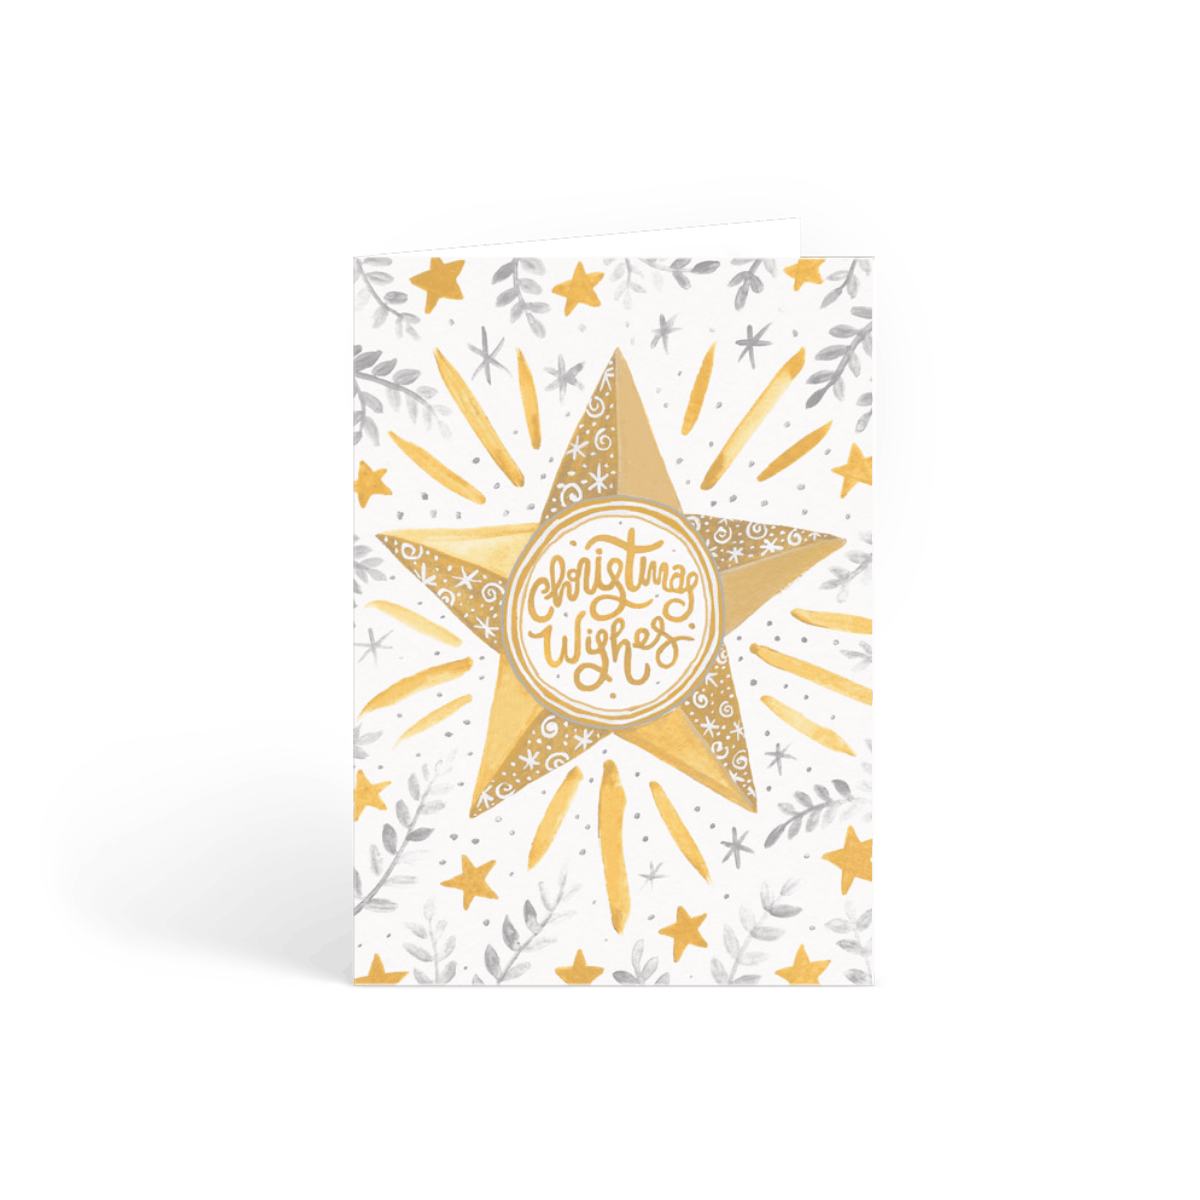 Https%3a%2f%2fwww.papier.com%2fproduct image%2f24742%2f2%2fchristmas star 6181 front 1498580373.png?ixlib=rb 1.1